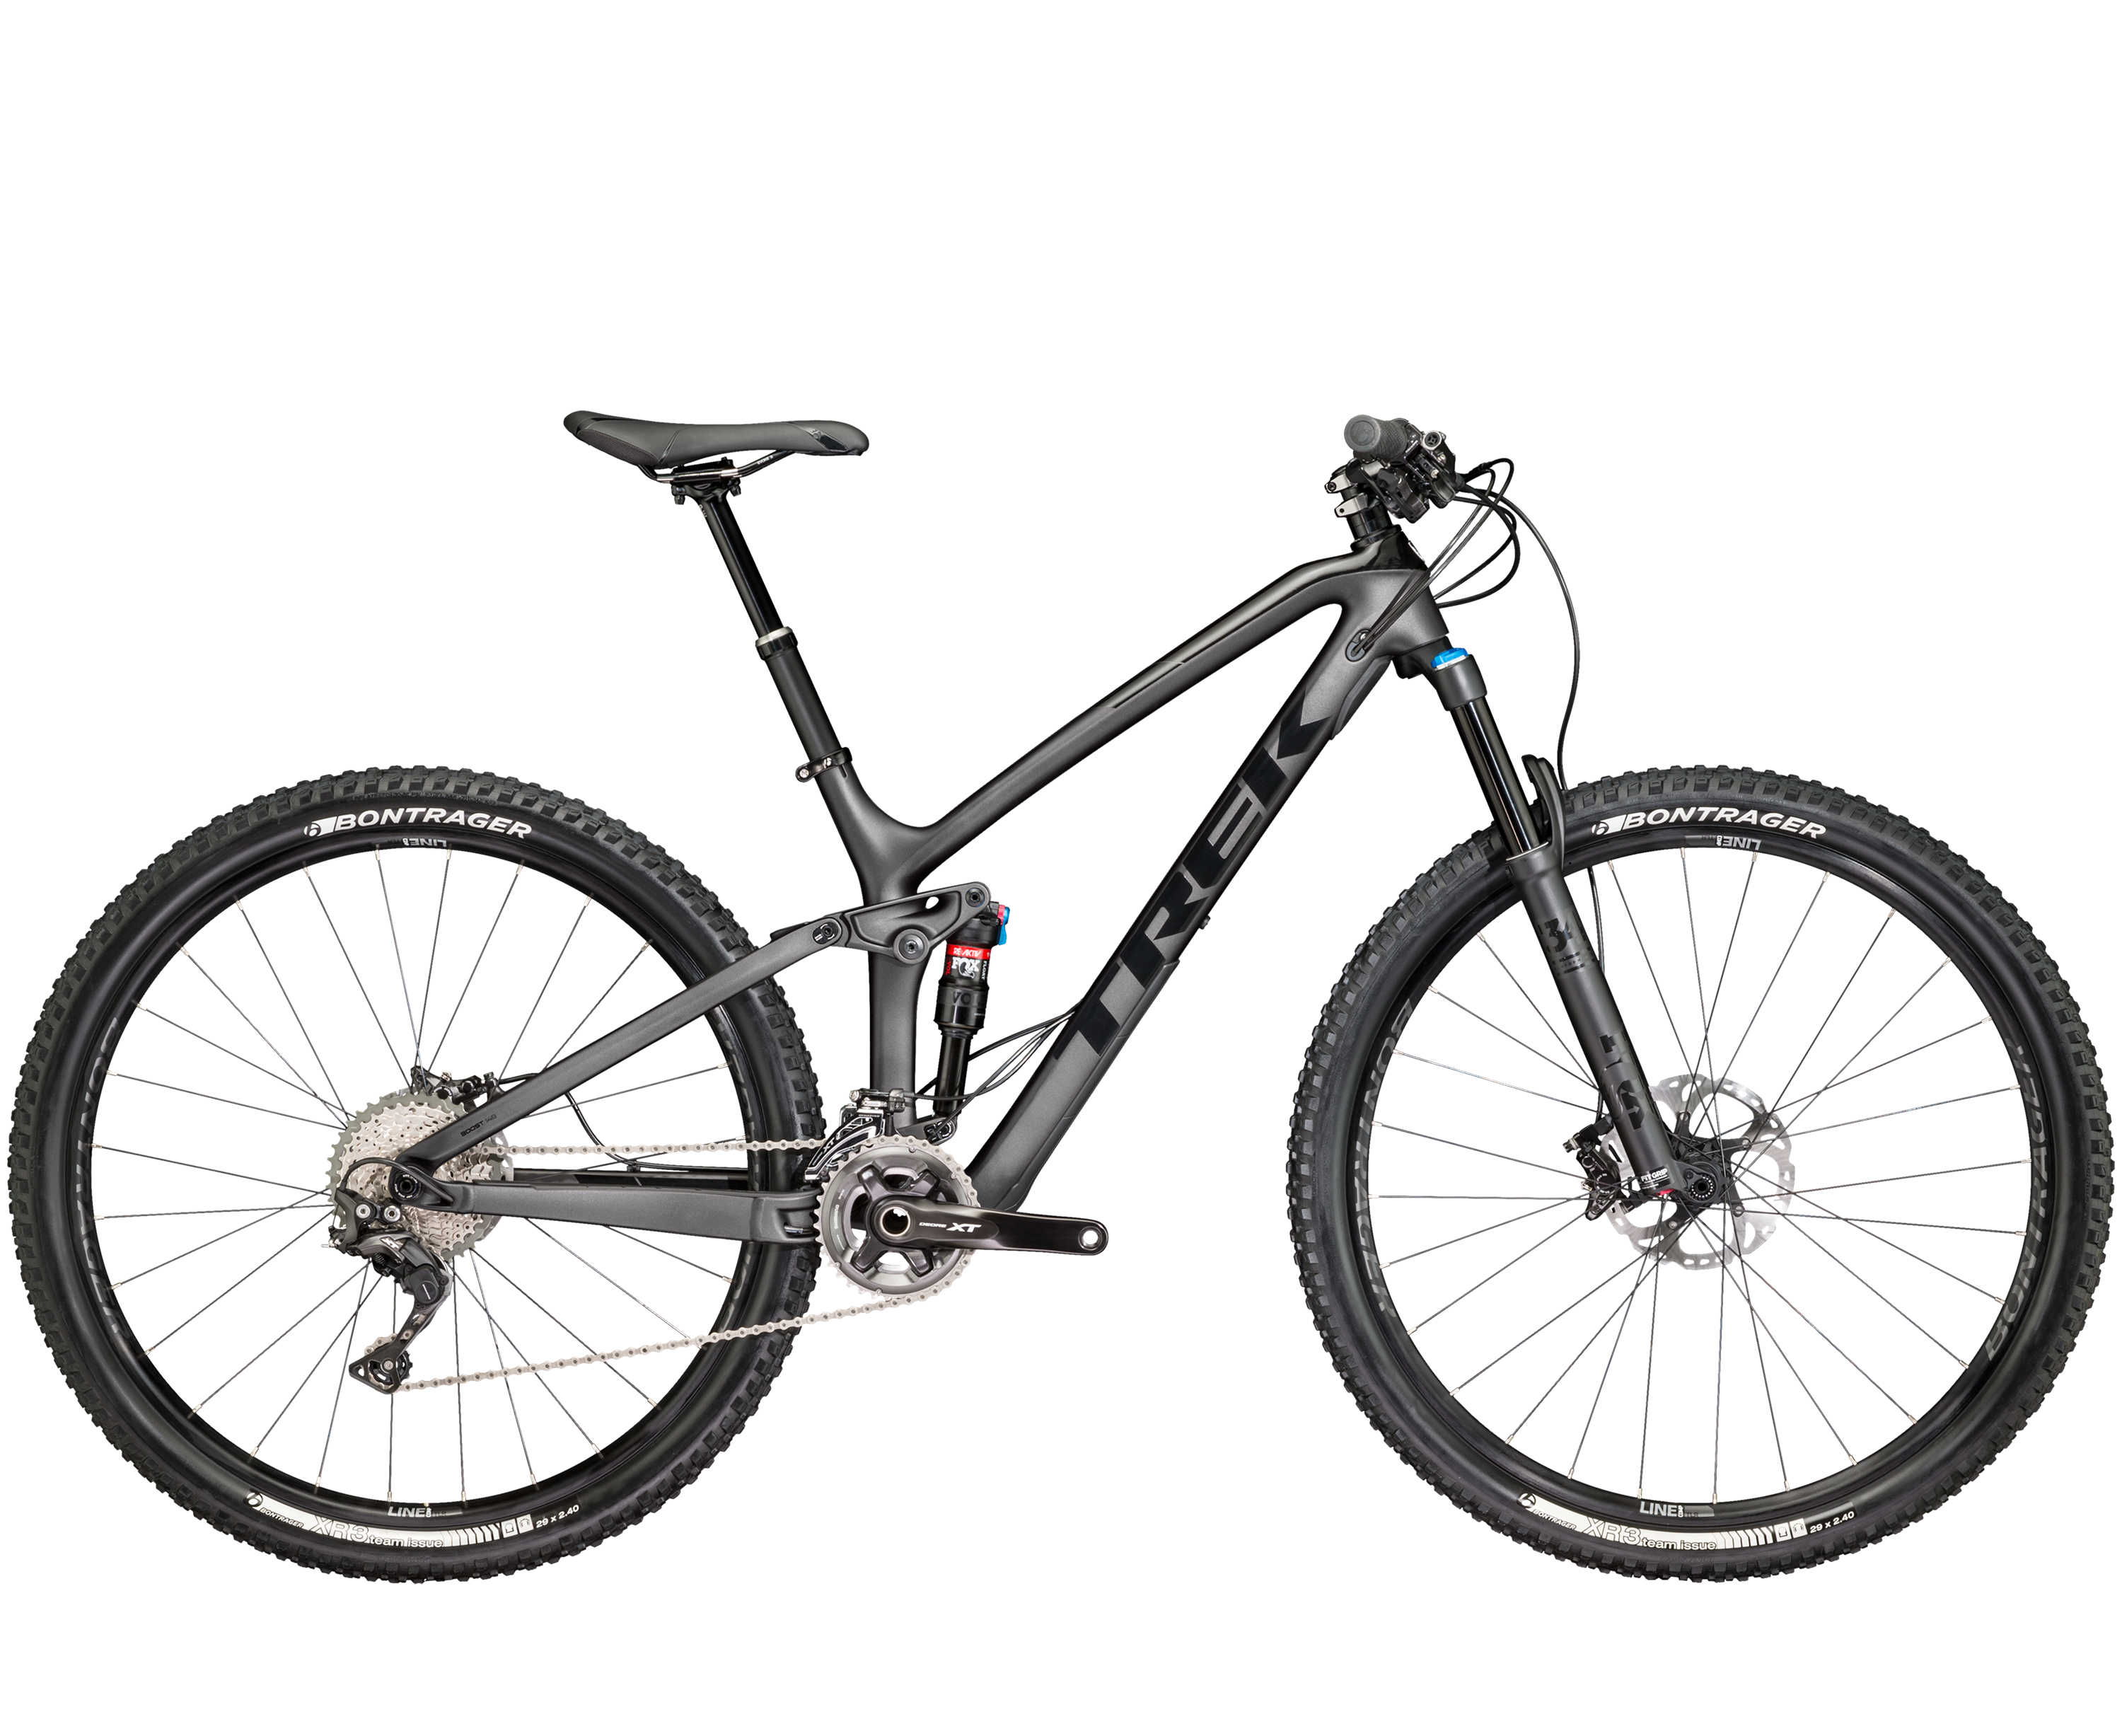 Trek Fuel EX 9.8 29 Matte/Gloss black 2017